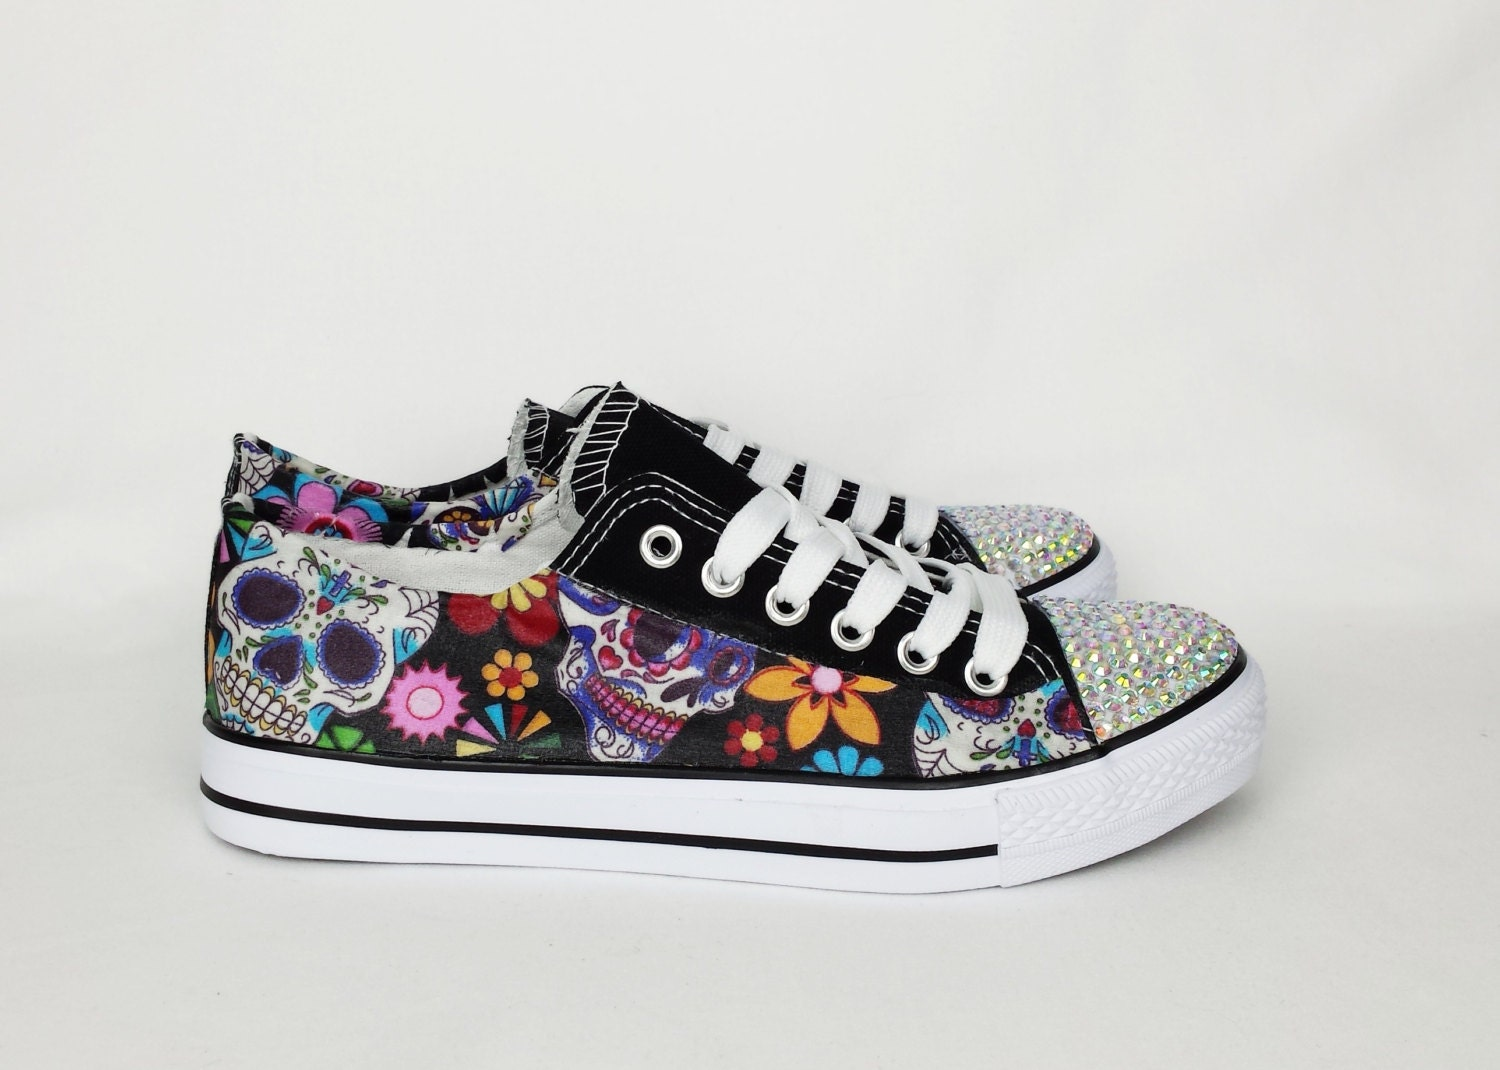 Day of the dead custom shoes women shoes sugar skull shoes